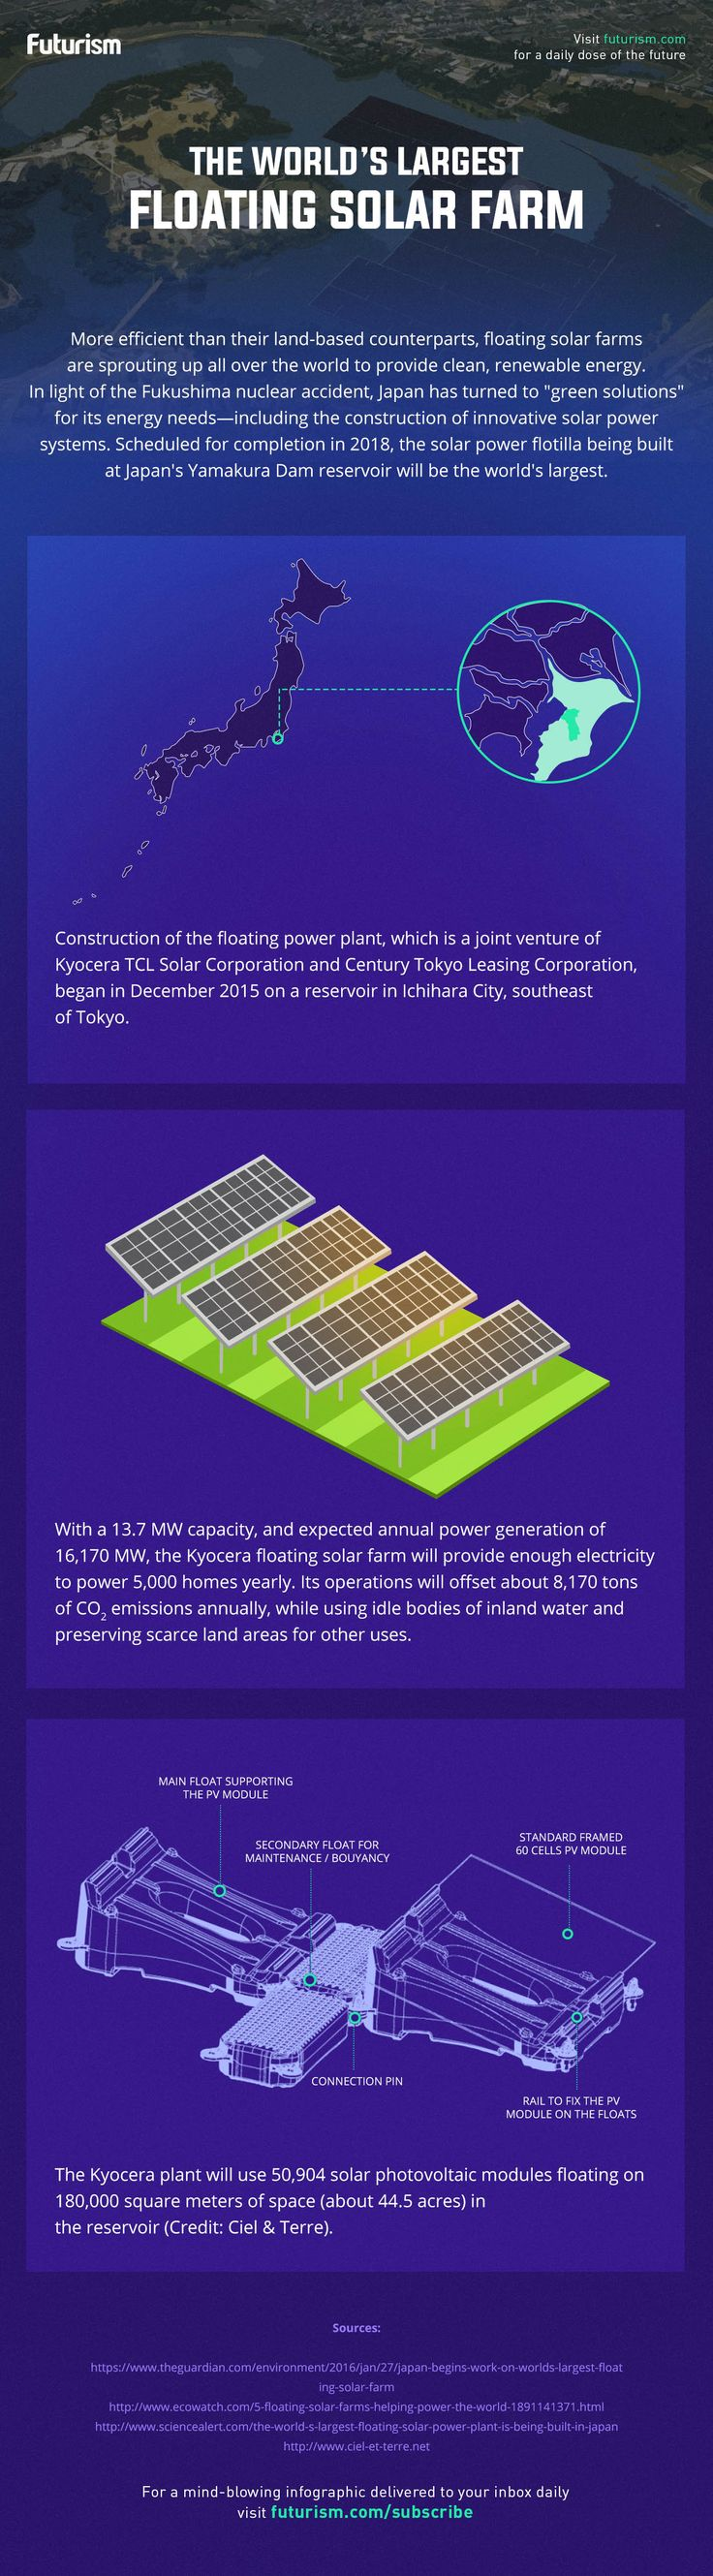 Check out Kyocera's new floating solar farm—the largest of its kind in the world.